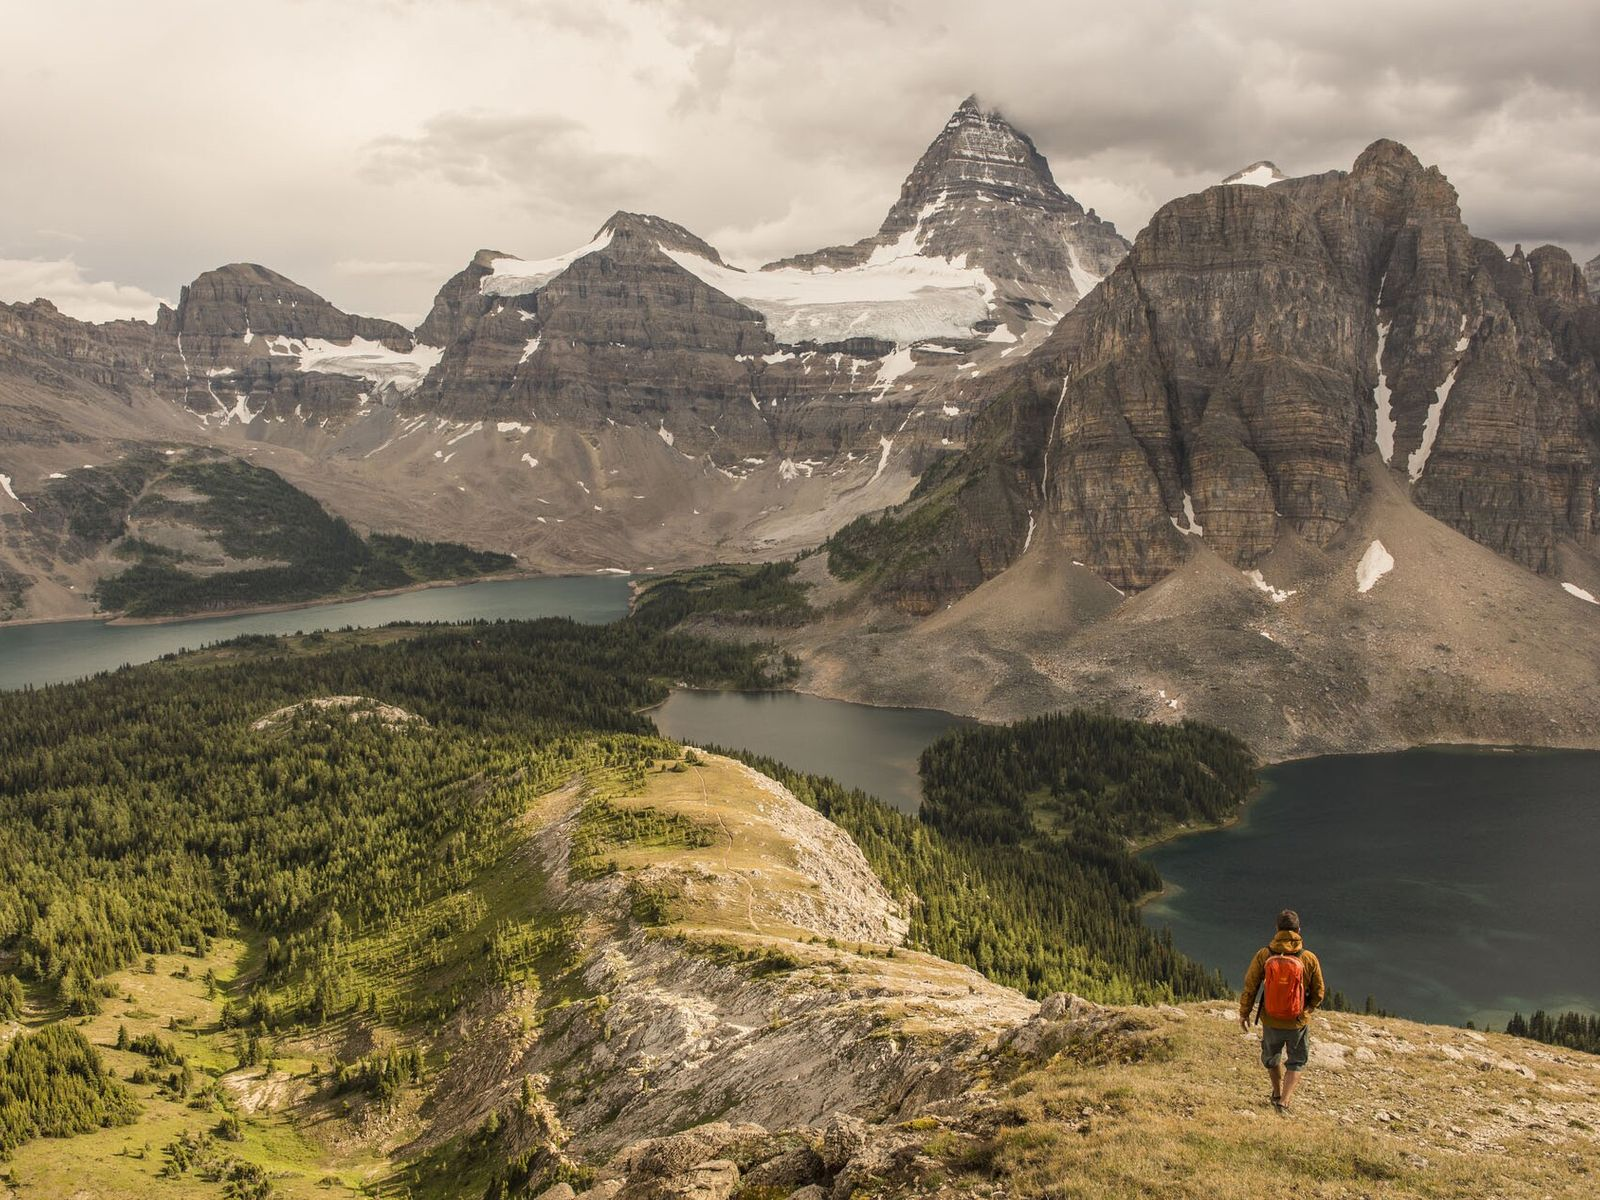 Mountains throng the map in British Columbia, spearing skywards in an endless spread that invites hikers ...